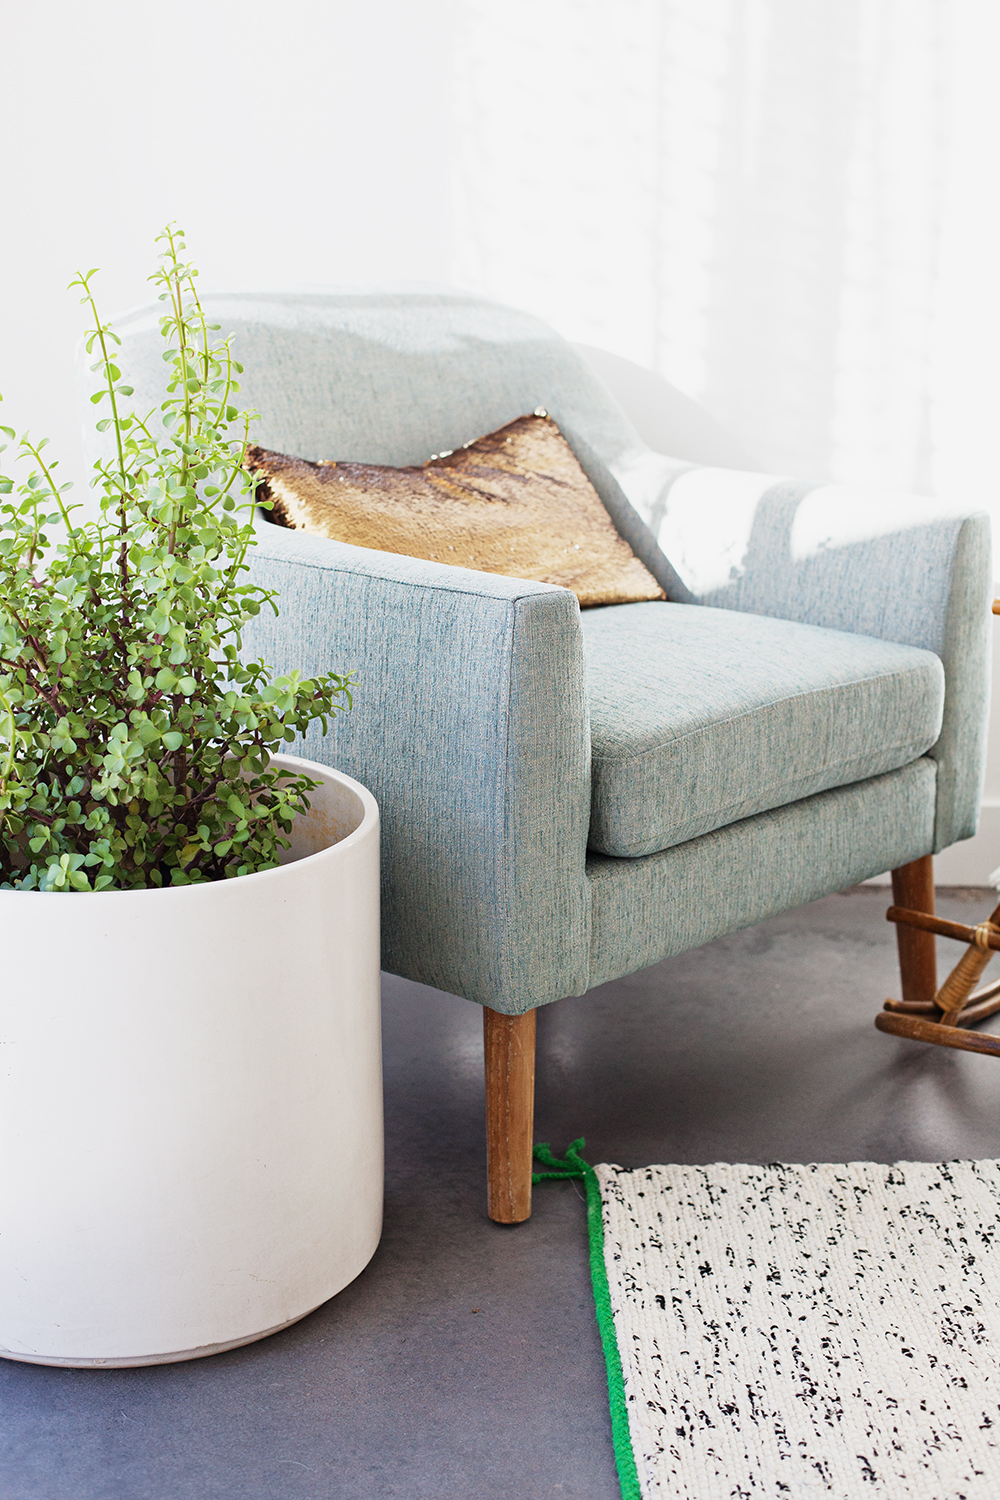 Chair from Houzz, large planter from Let Go, rug from Ikea, sequin pillow from Nordstrom Rack, plant from Home Depot